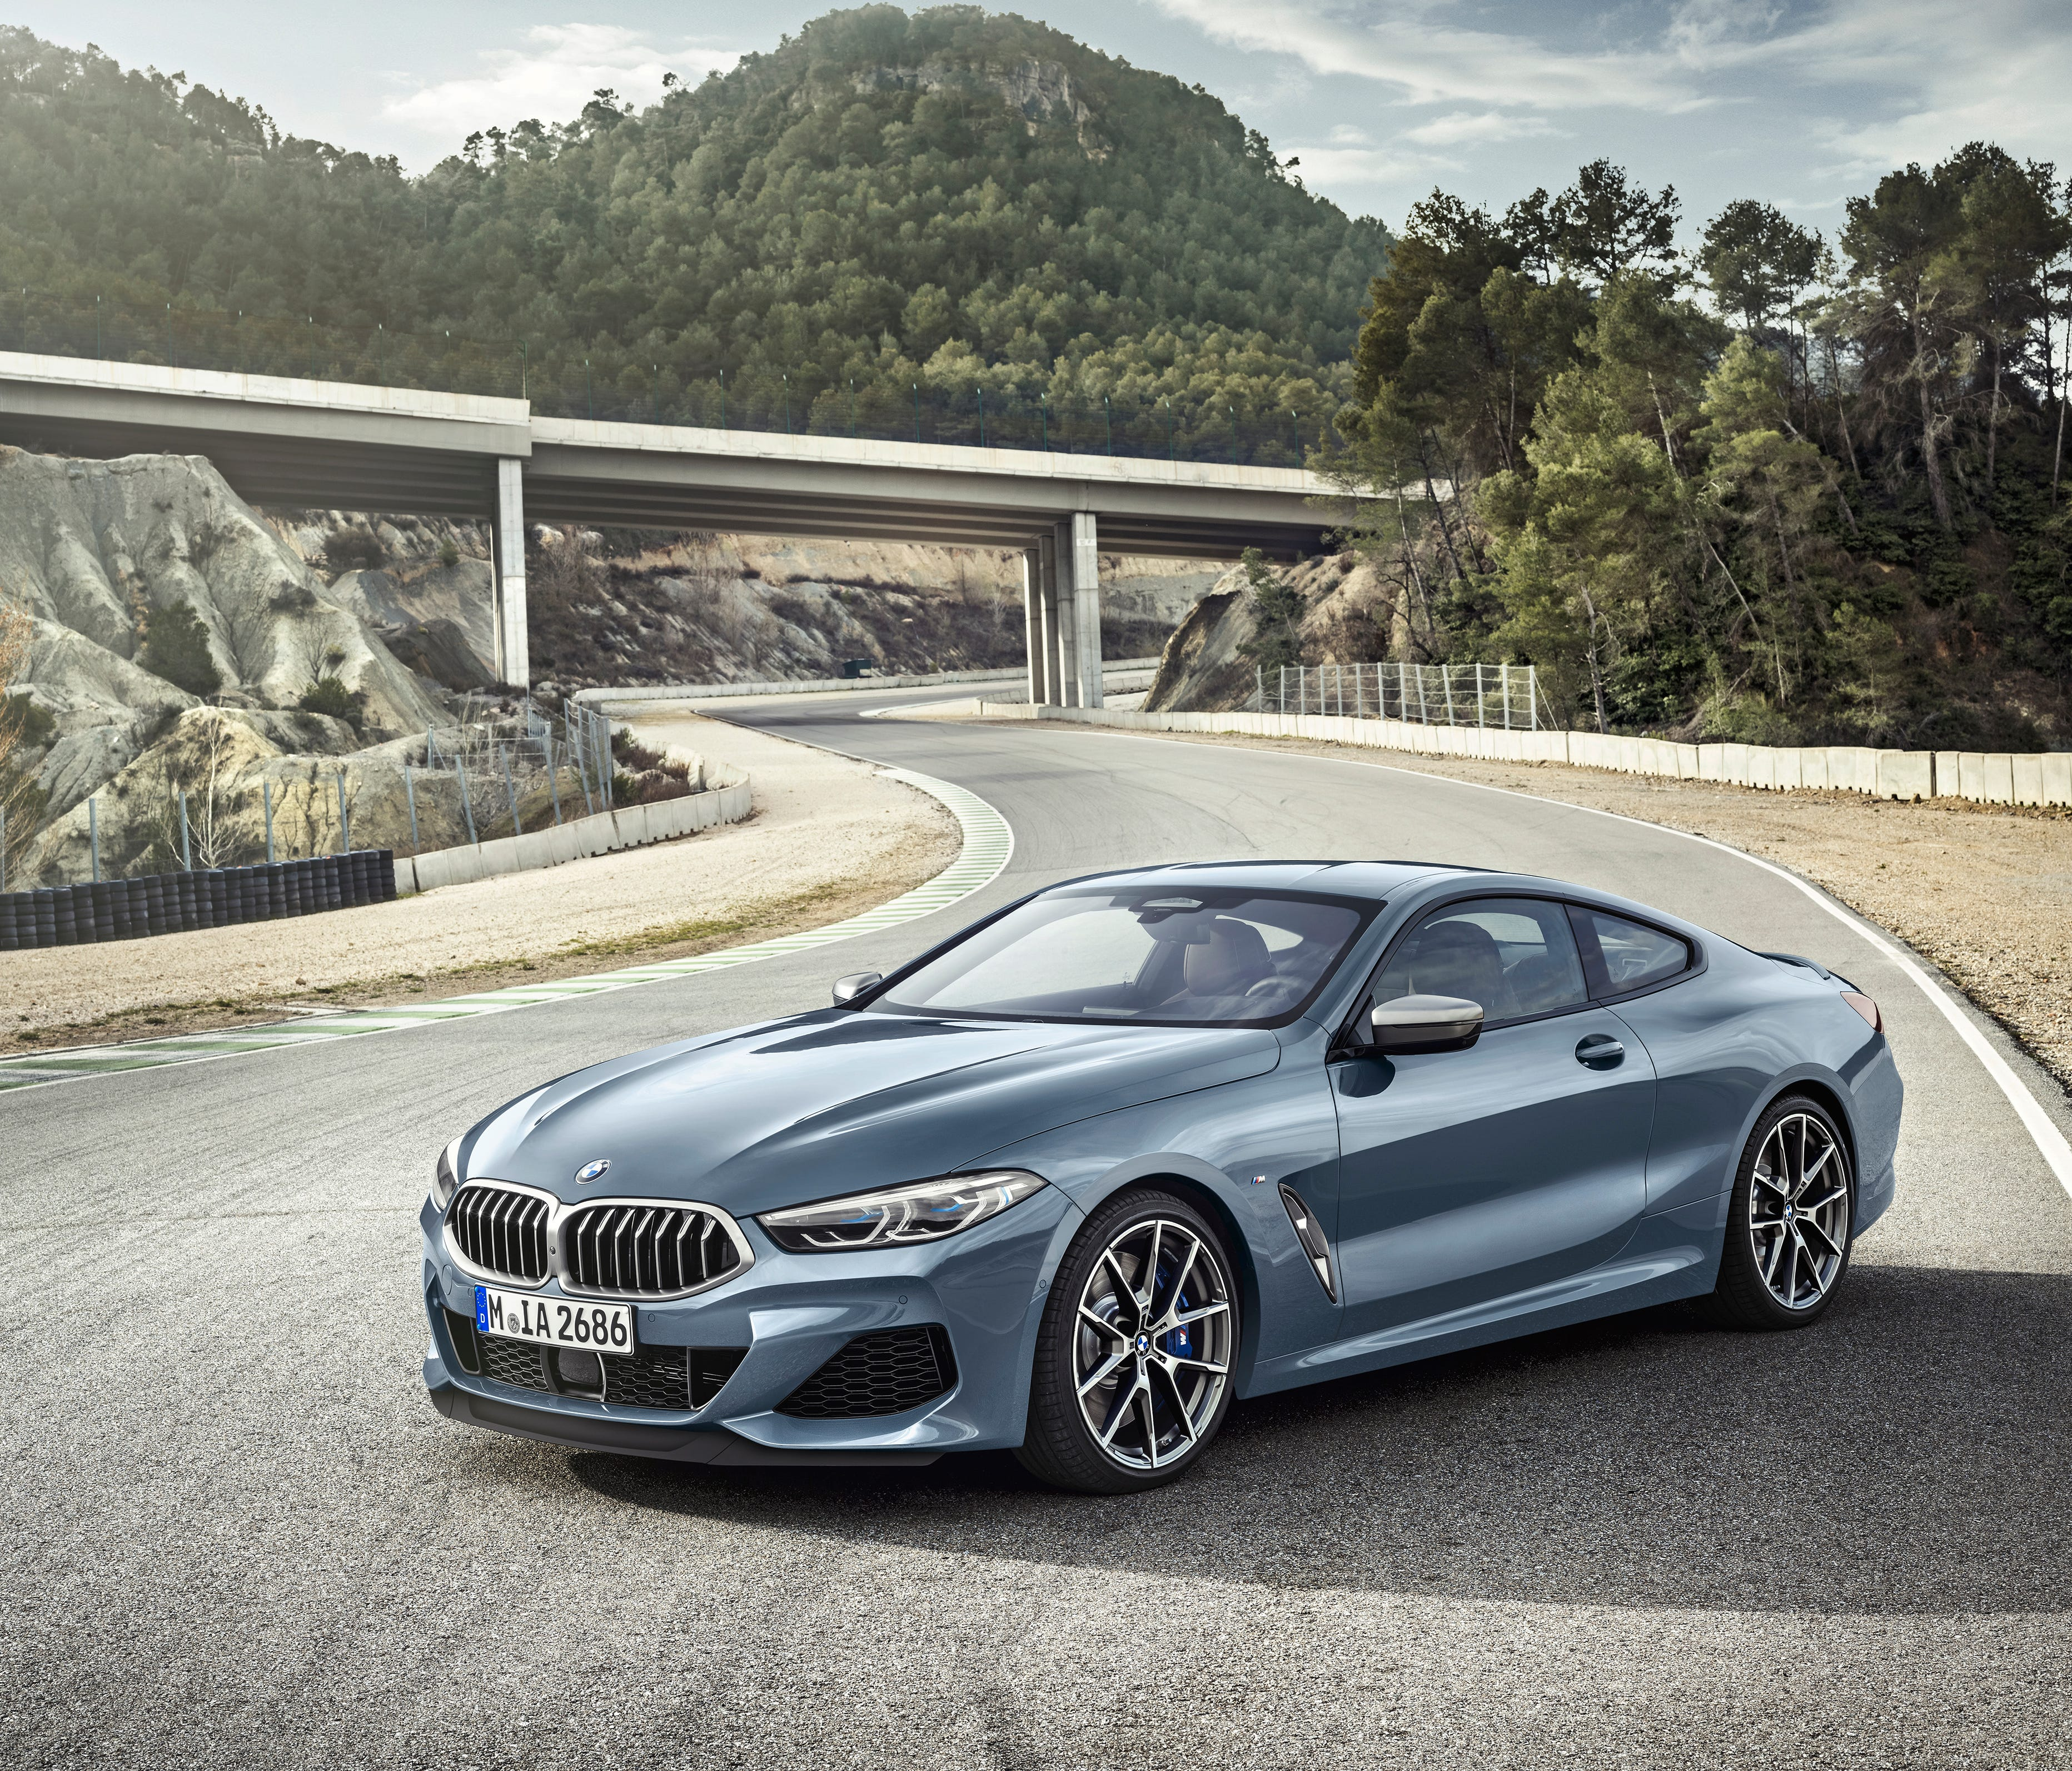 The 2019 BMW 8-series coupe.